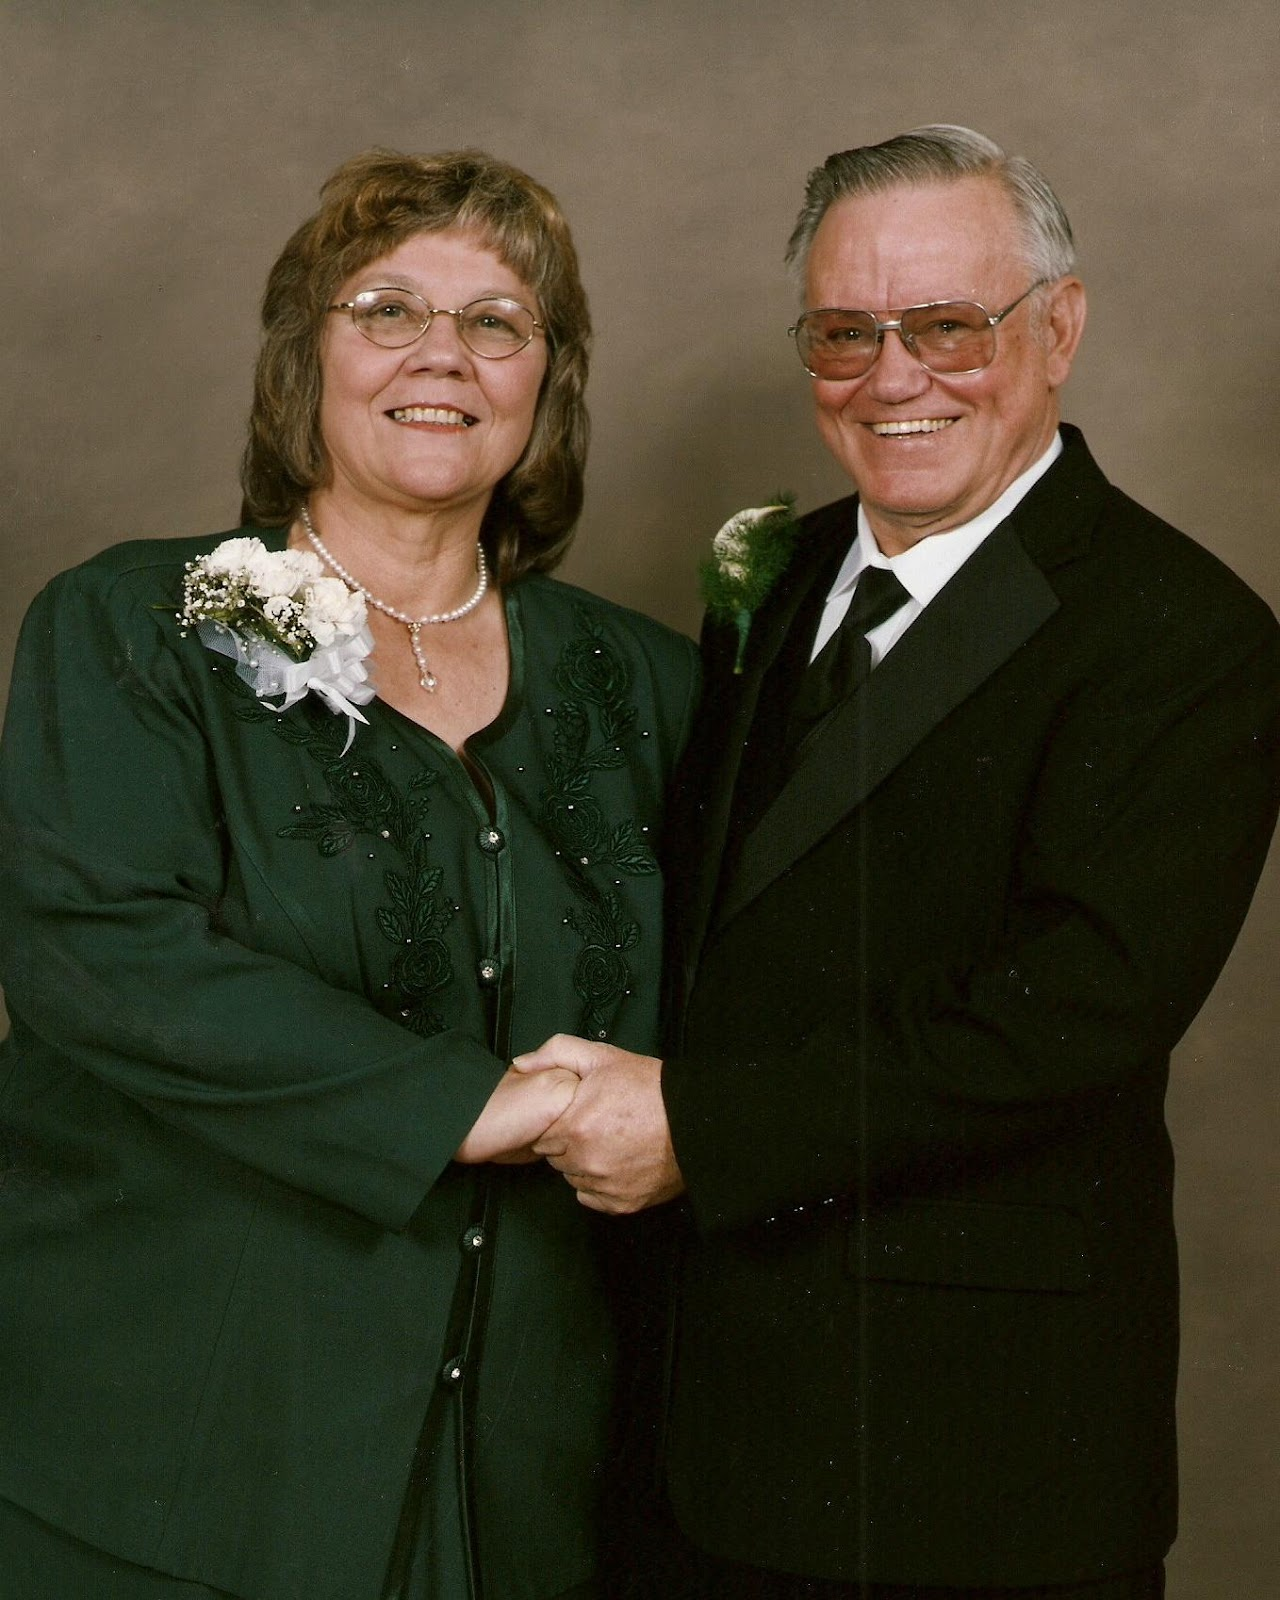 celebrating 50th wedding